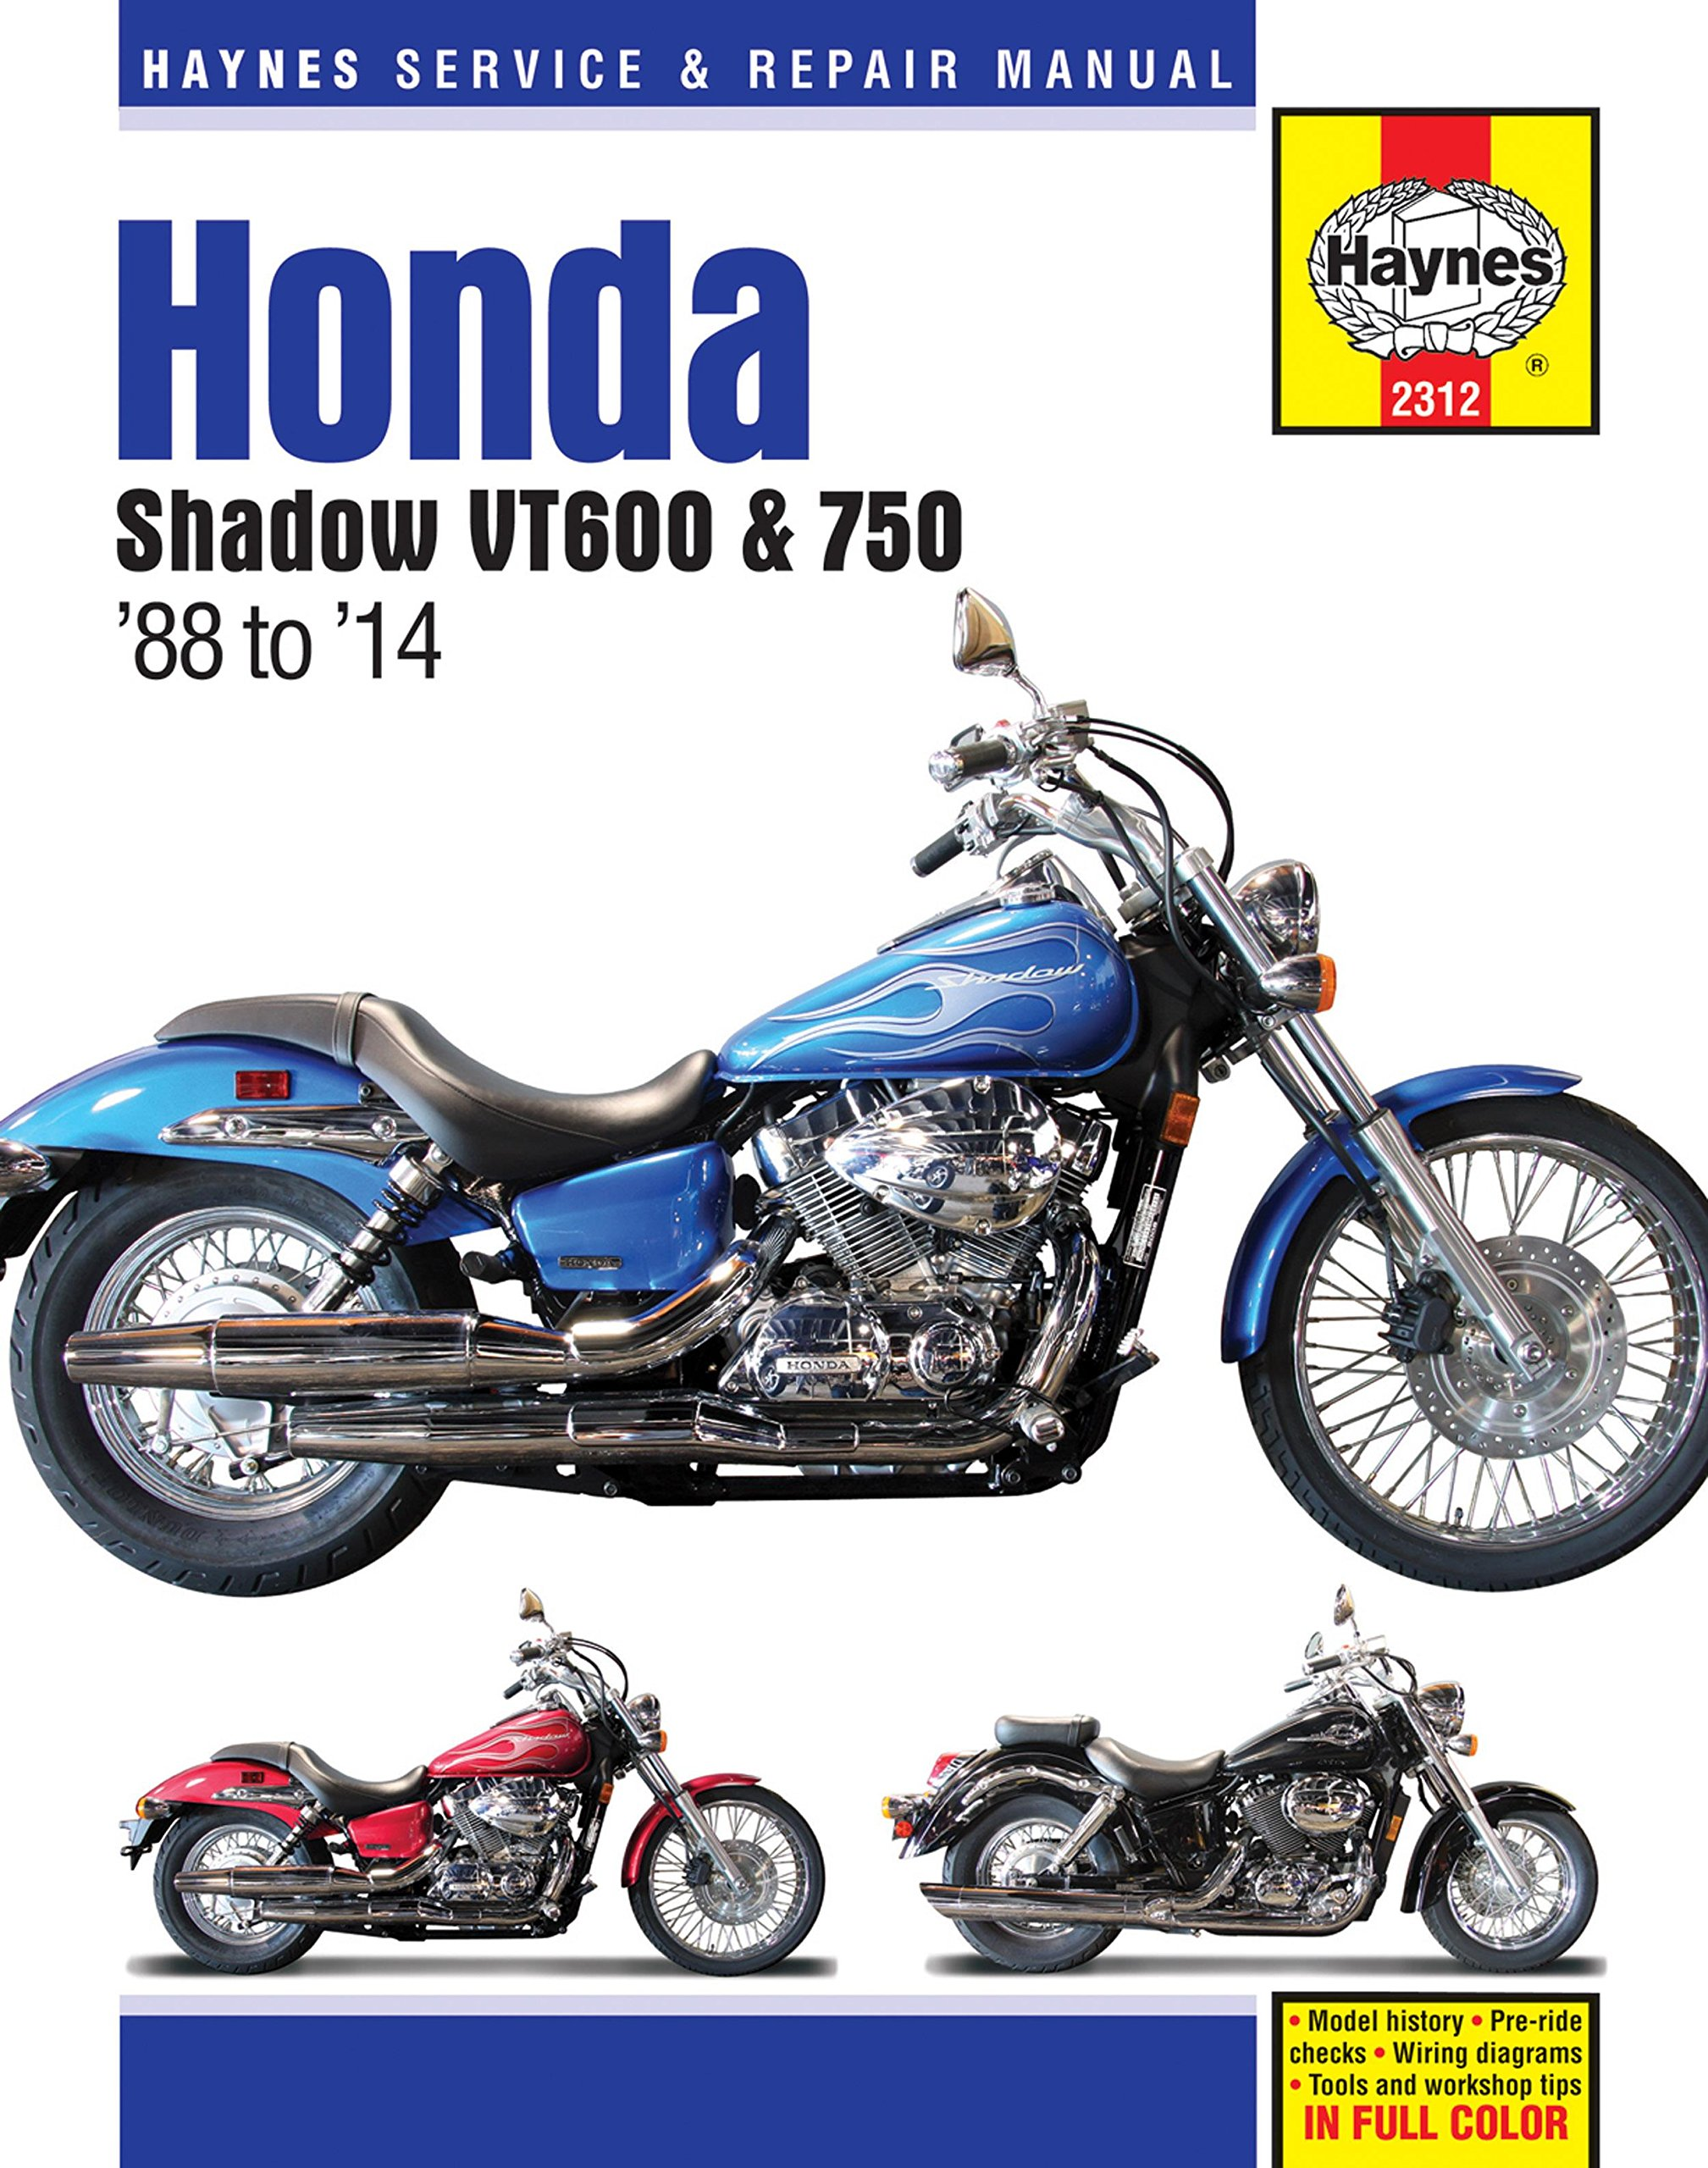 [SCHEMATICS_4HG]  7B2E5 2007 Honda Shadow Aero Wiring Diagram | Wiring Resources | Wiring Diagrams For 750 Honda Shadow 2012 |  | Wiring Resources